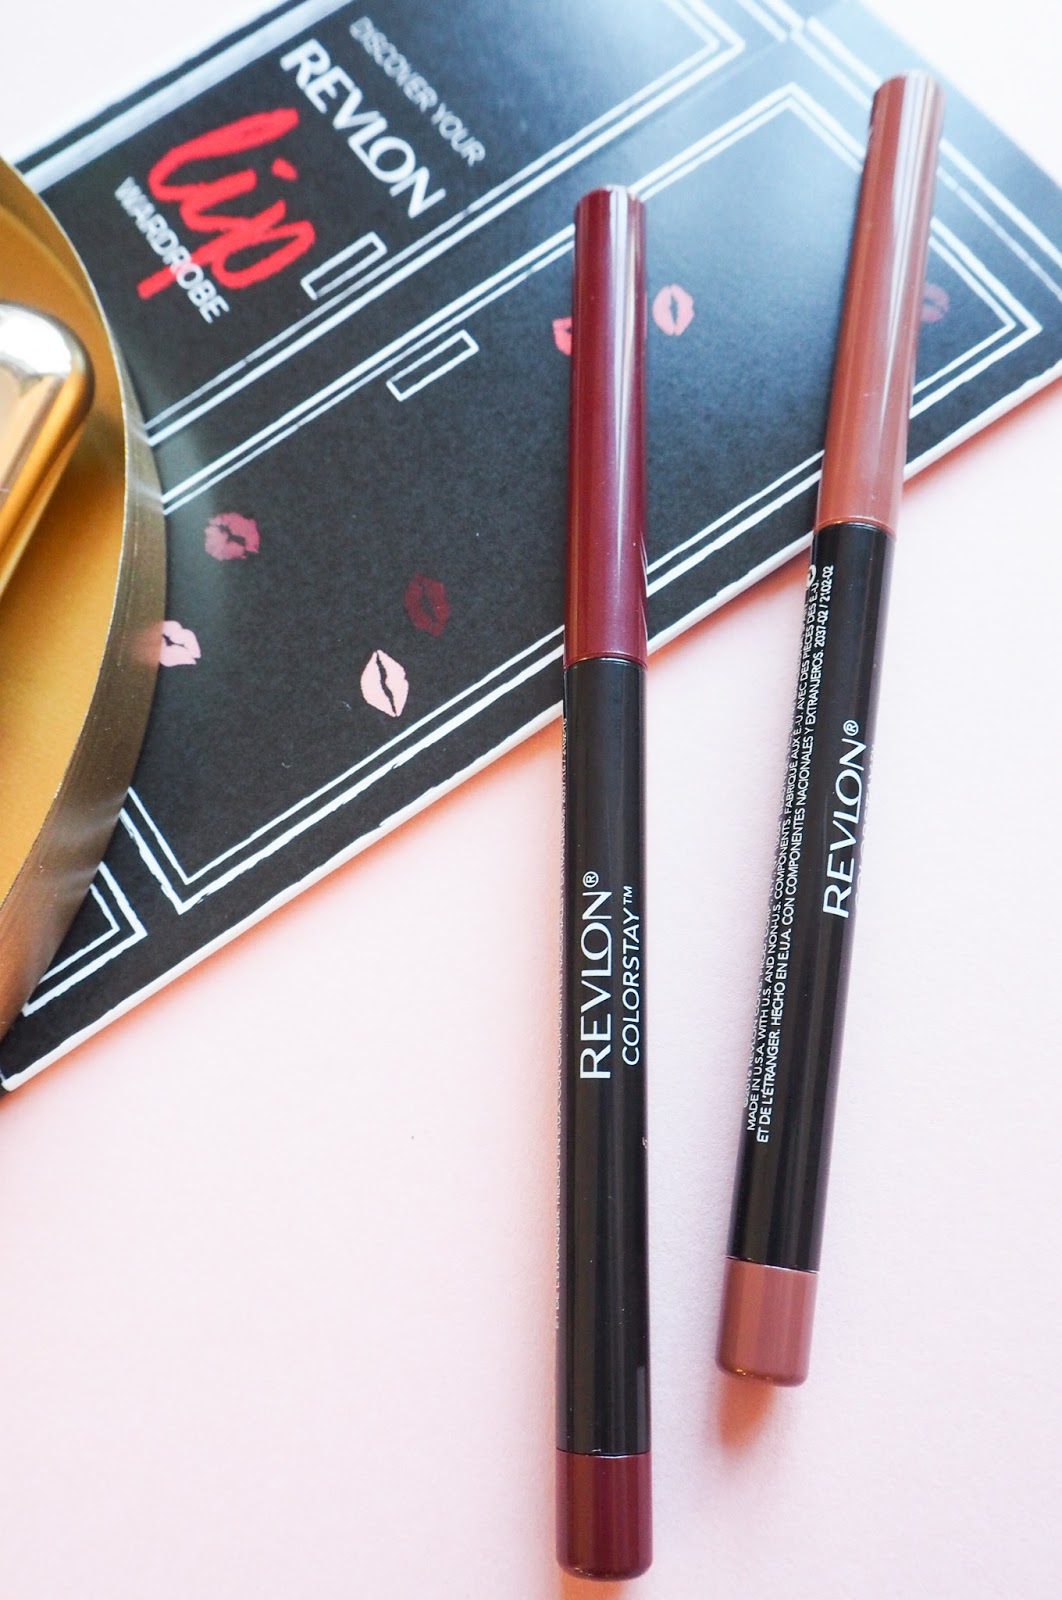 Revlon Colourstay Lipliner in Nude and Plum